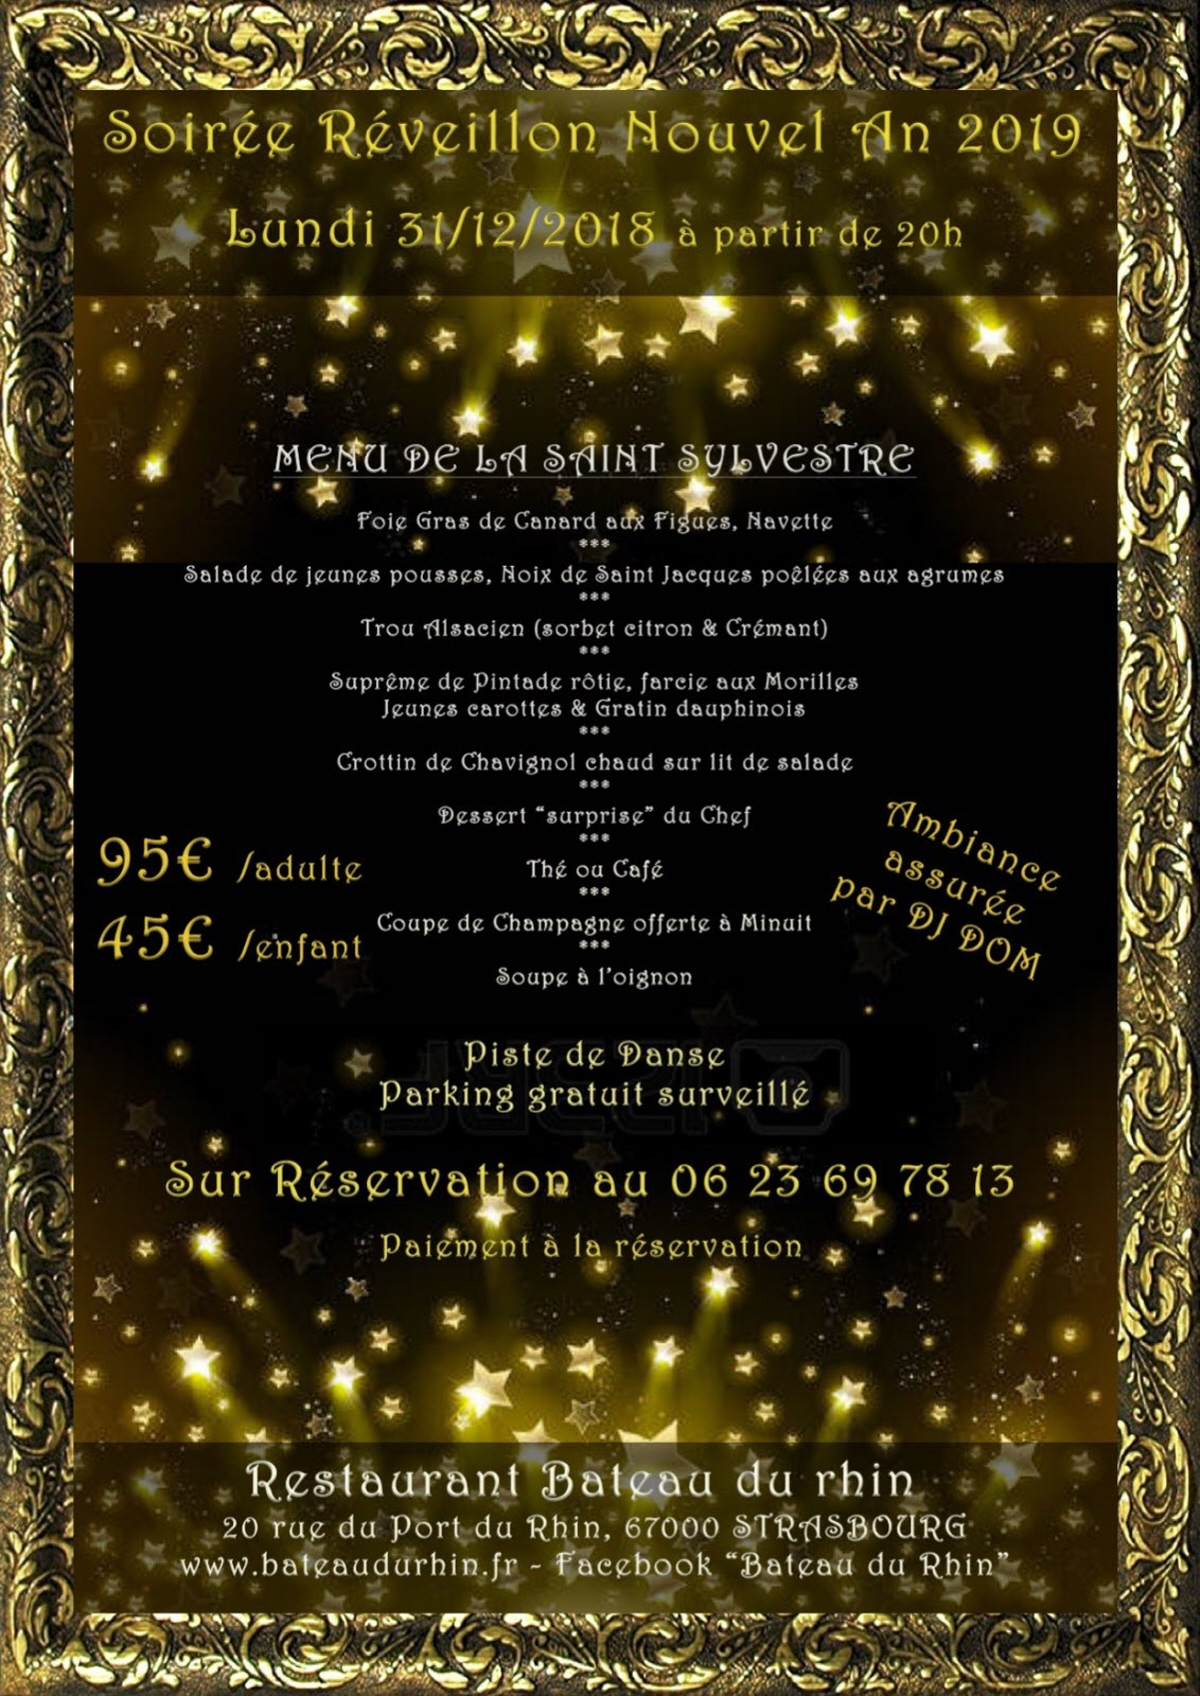 illustration soiree reveillon nouvel an 2019